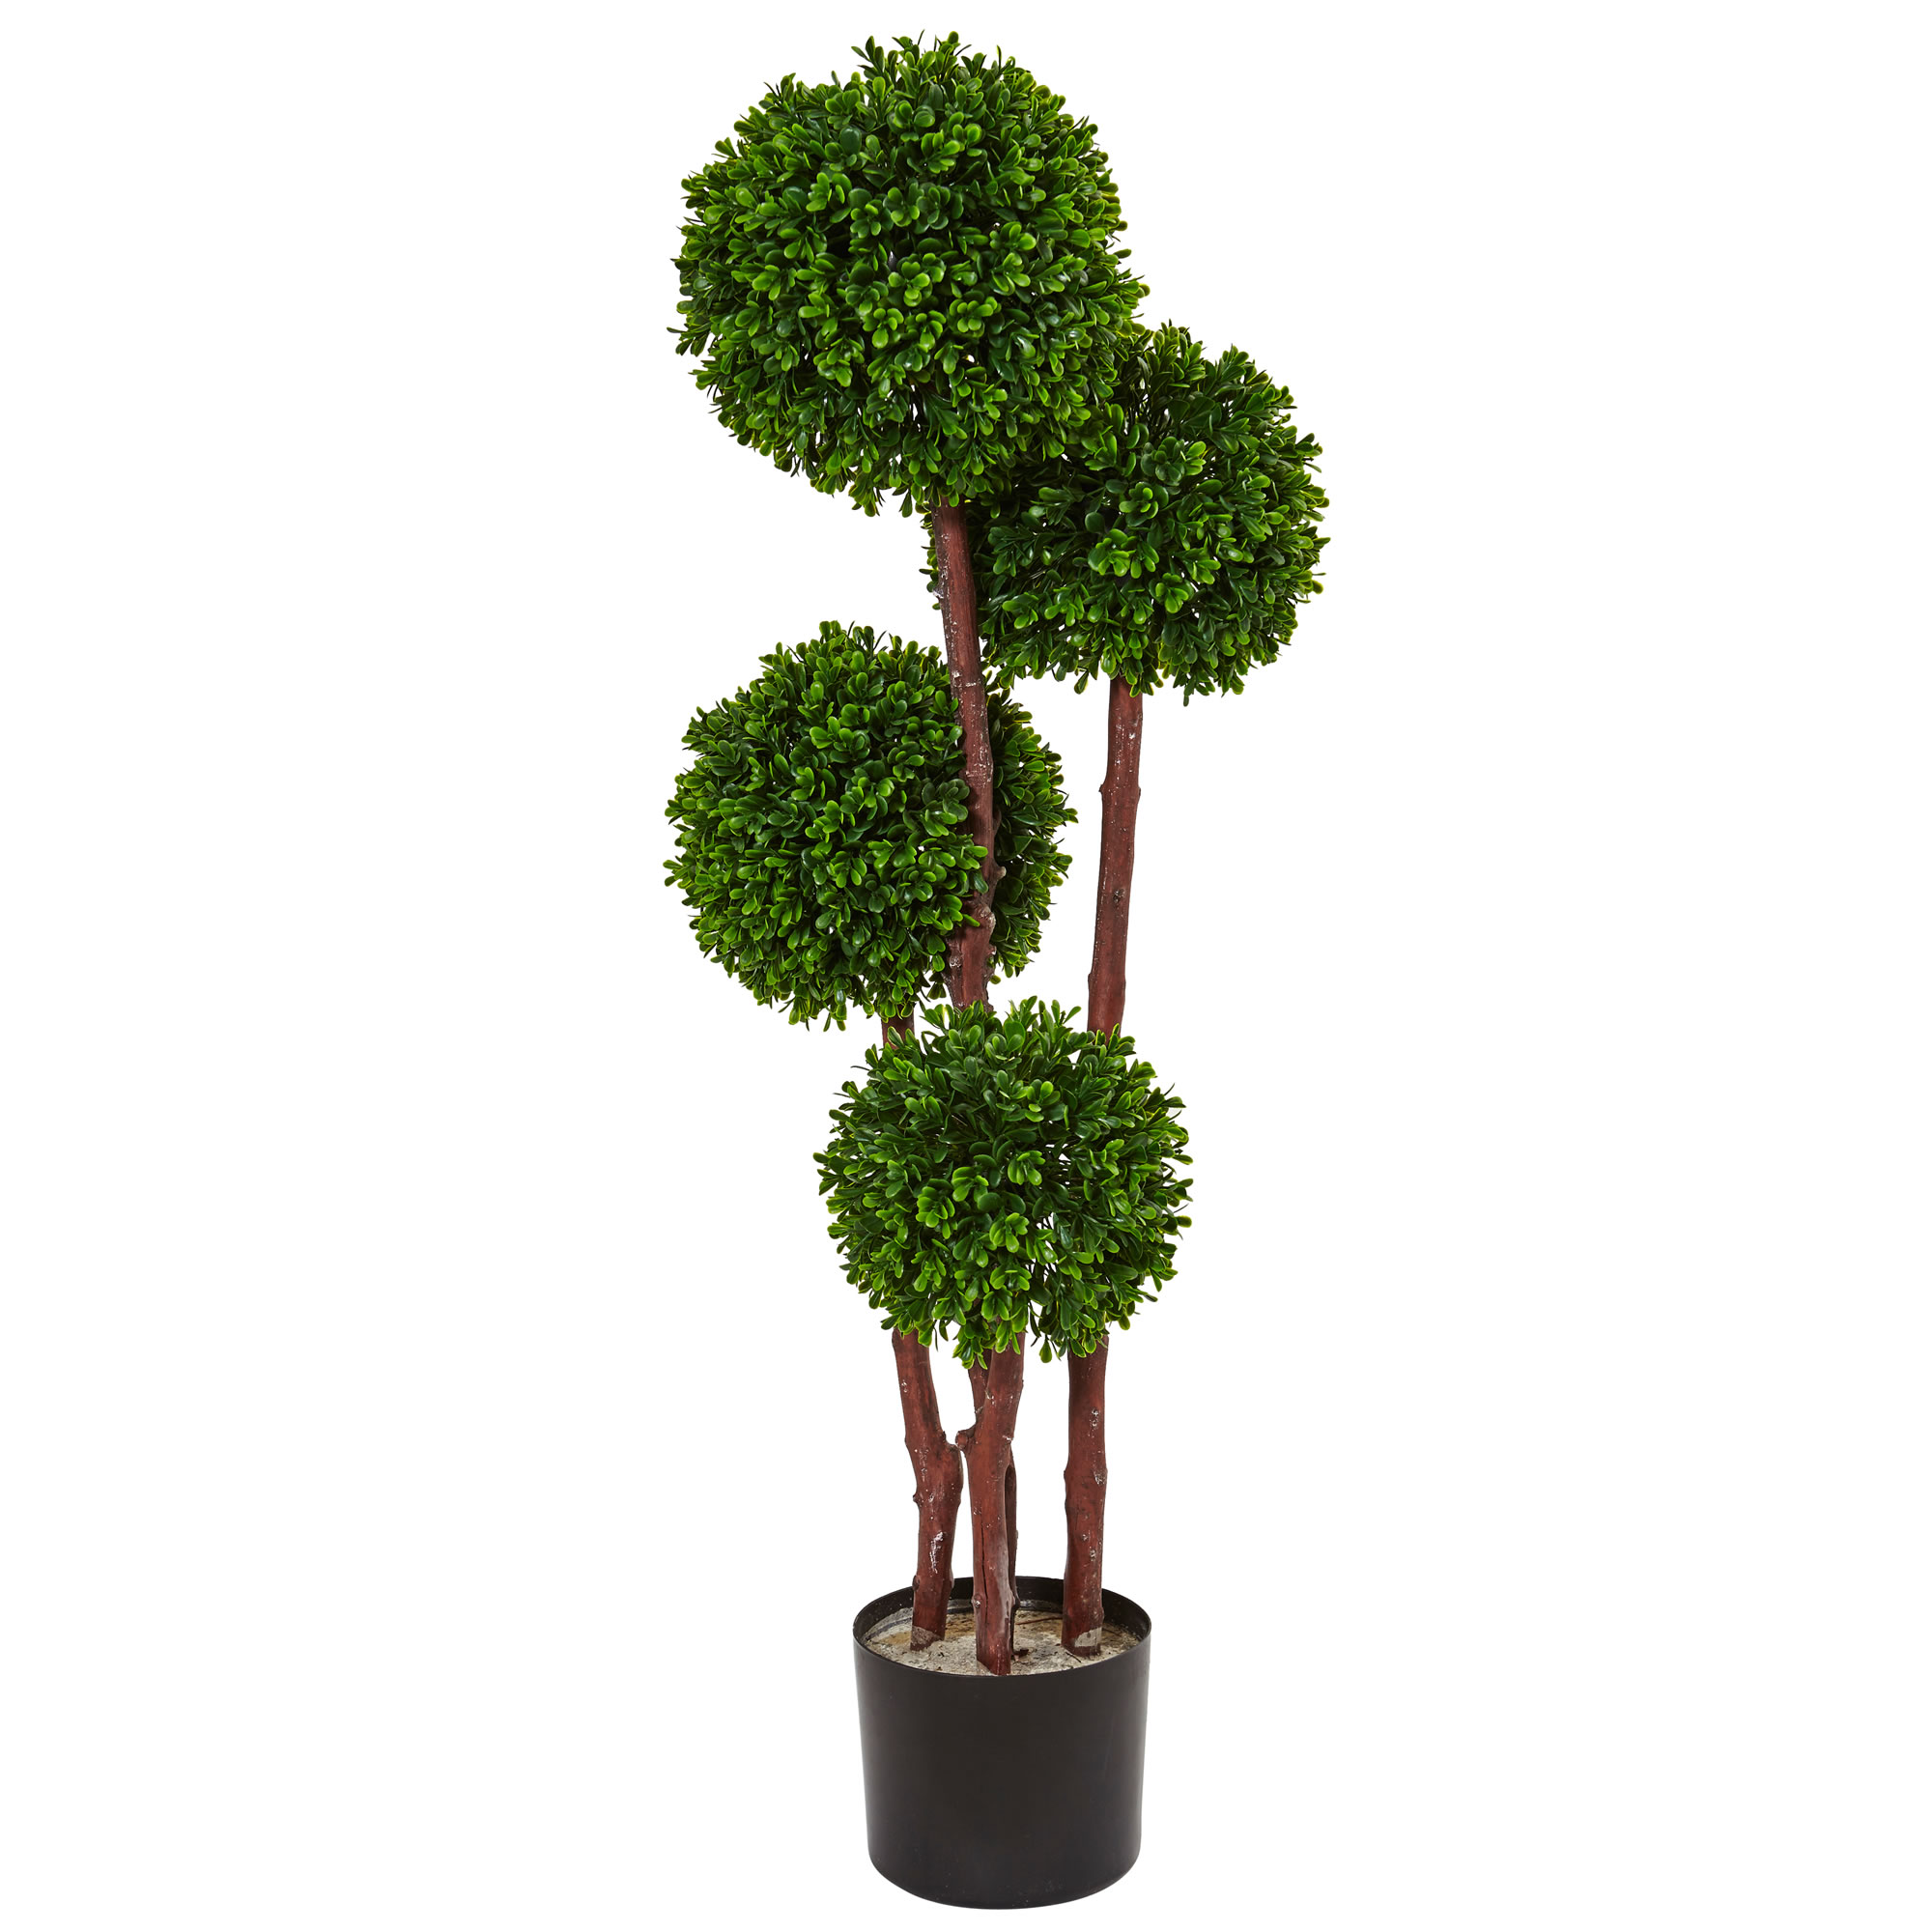 Boxwood Topiary Tree Uv Resistant Realistic Plant Nearly Natural 3 Home Decor Ebay